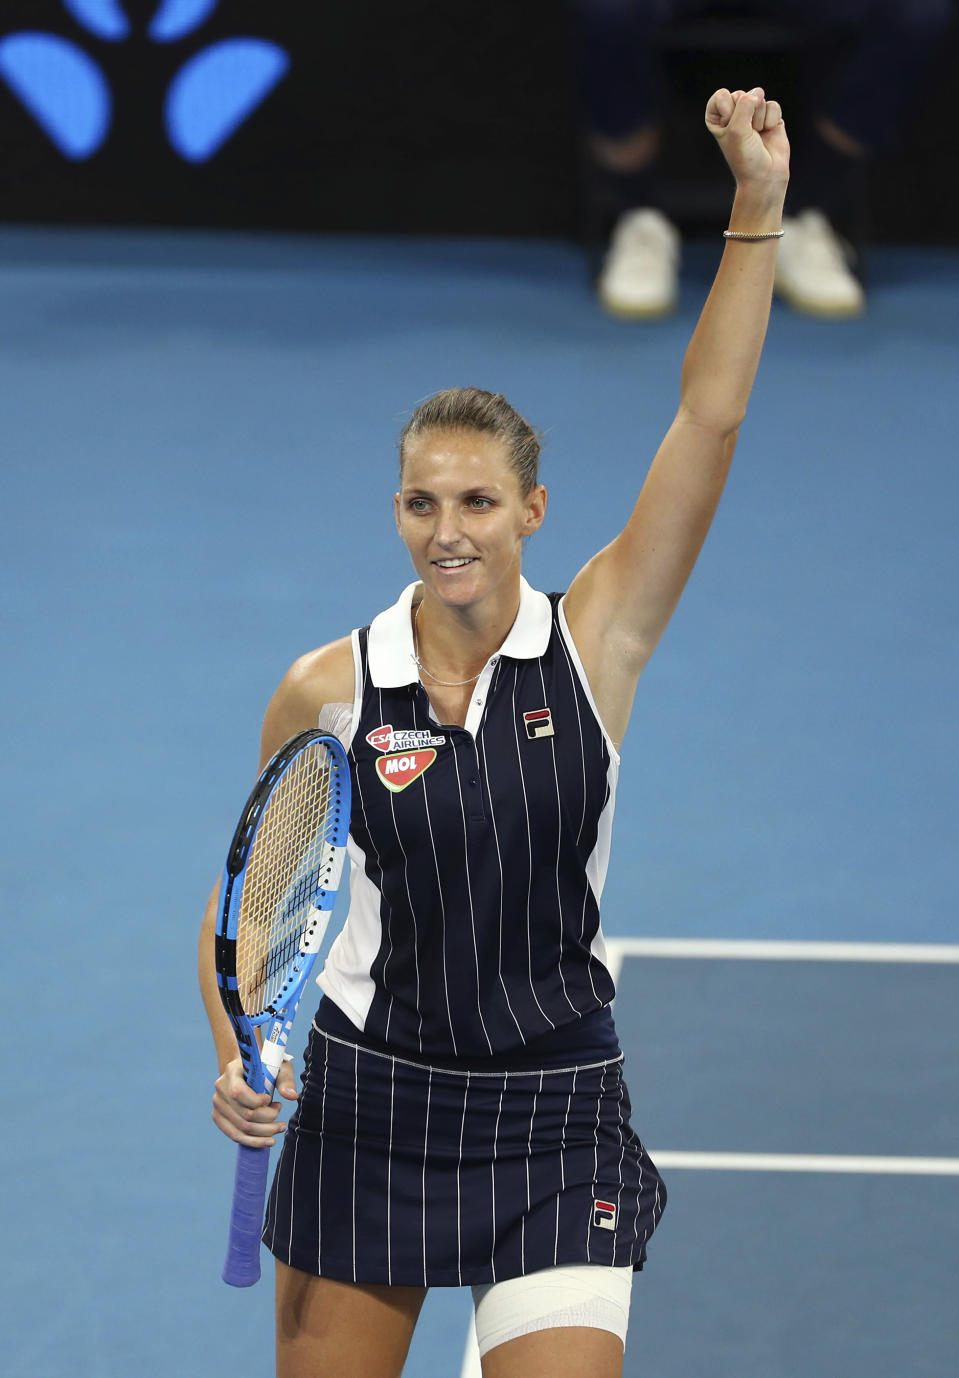 Karolina Pliskova of the Czech Republic reacts after winning her final match against Madison Keys of the United States 6-4, 4-6, 7-5, at the Brisbane International tennis tournament in Brisbane, Australia, Sunday, Jan. 12, 2020. (AP Photo/Tertius Pickard)